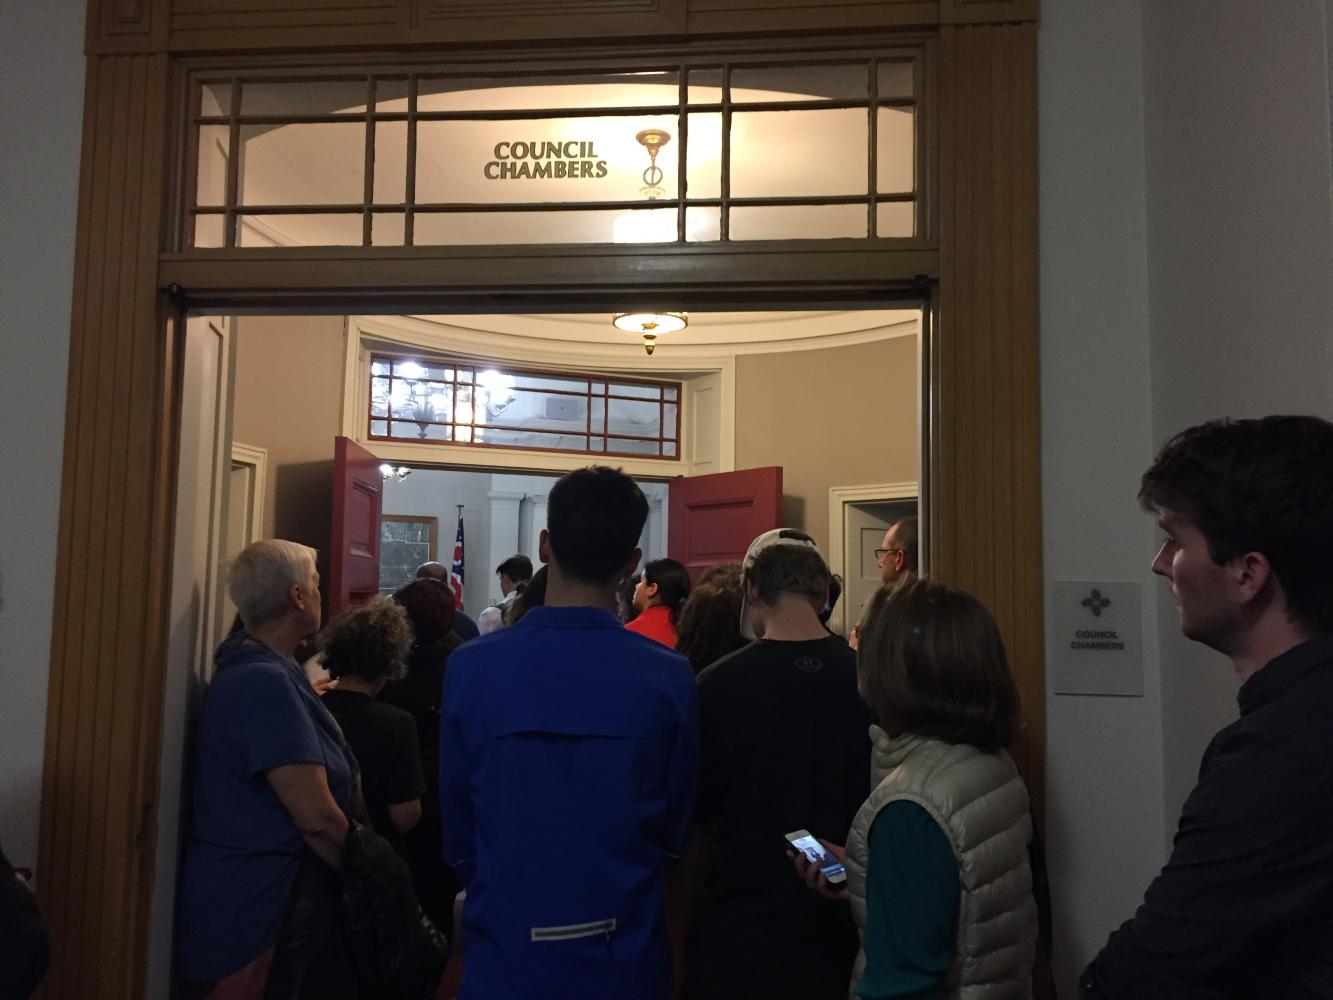 Shaker residents crowded into city hall April 24 awaiting a council decision.